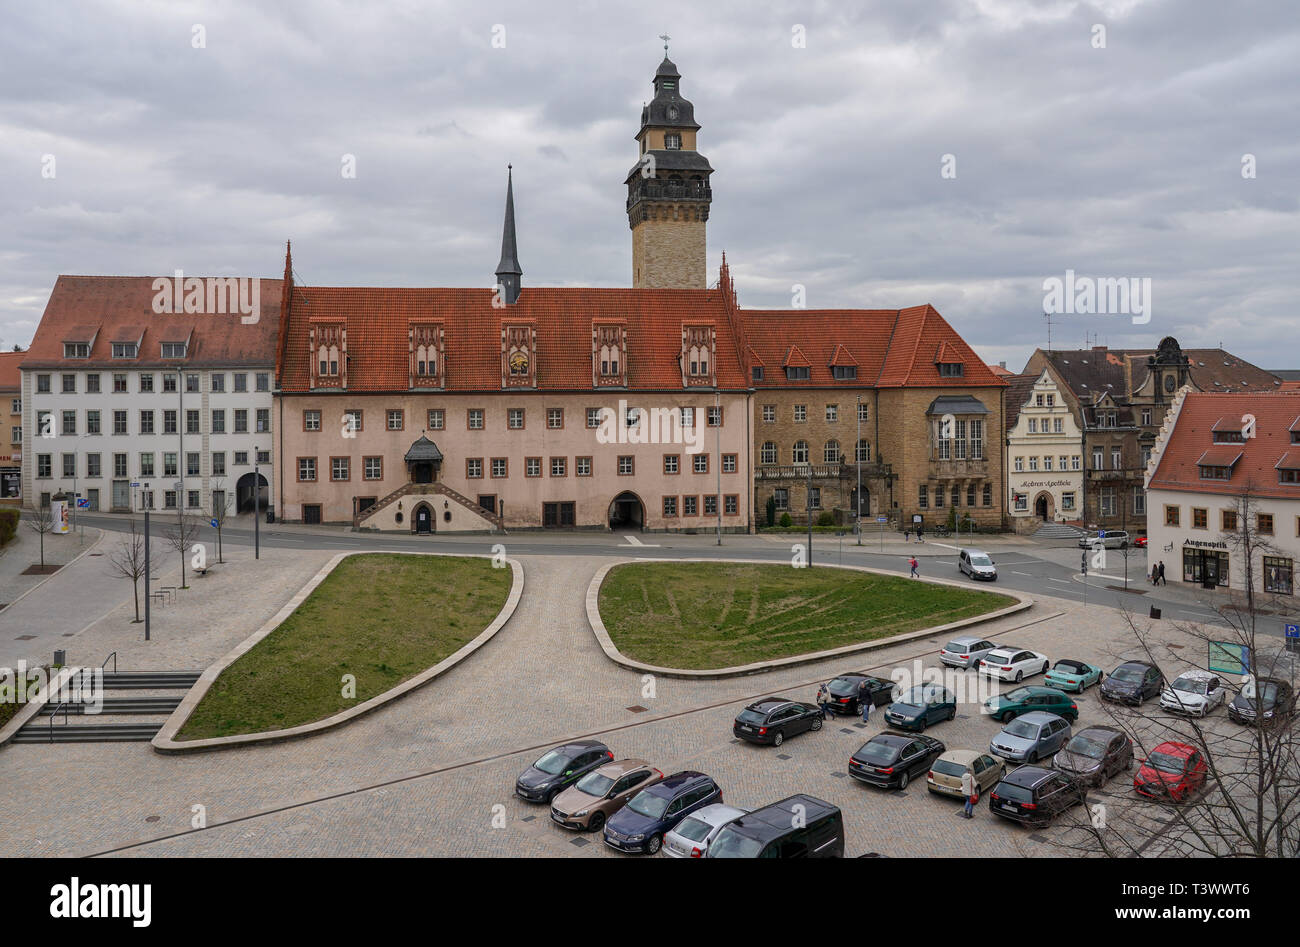 Zeitz, Germany. 26th Mar, 2019. The town hall (M) at the Altmarkt in Zeitz. In a dpa discussion with a city tour, the mayor of Zeitz commented on topics such as coal withdrawal and structural change. (to dpa 'Hot topic coal: Zeitz wants to be 'cool' in the Central German Ruhr') Credit: Peter Endig/dpa/Alamy Live News - Stock Image